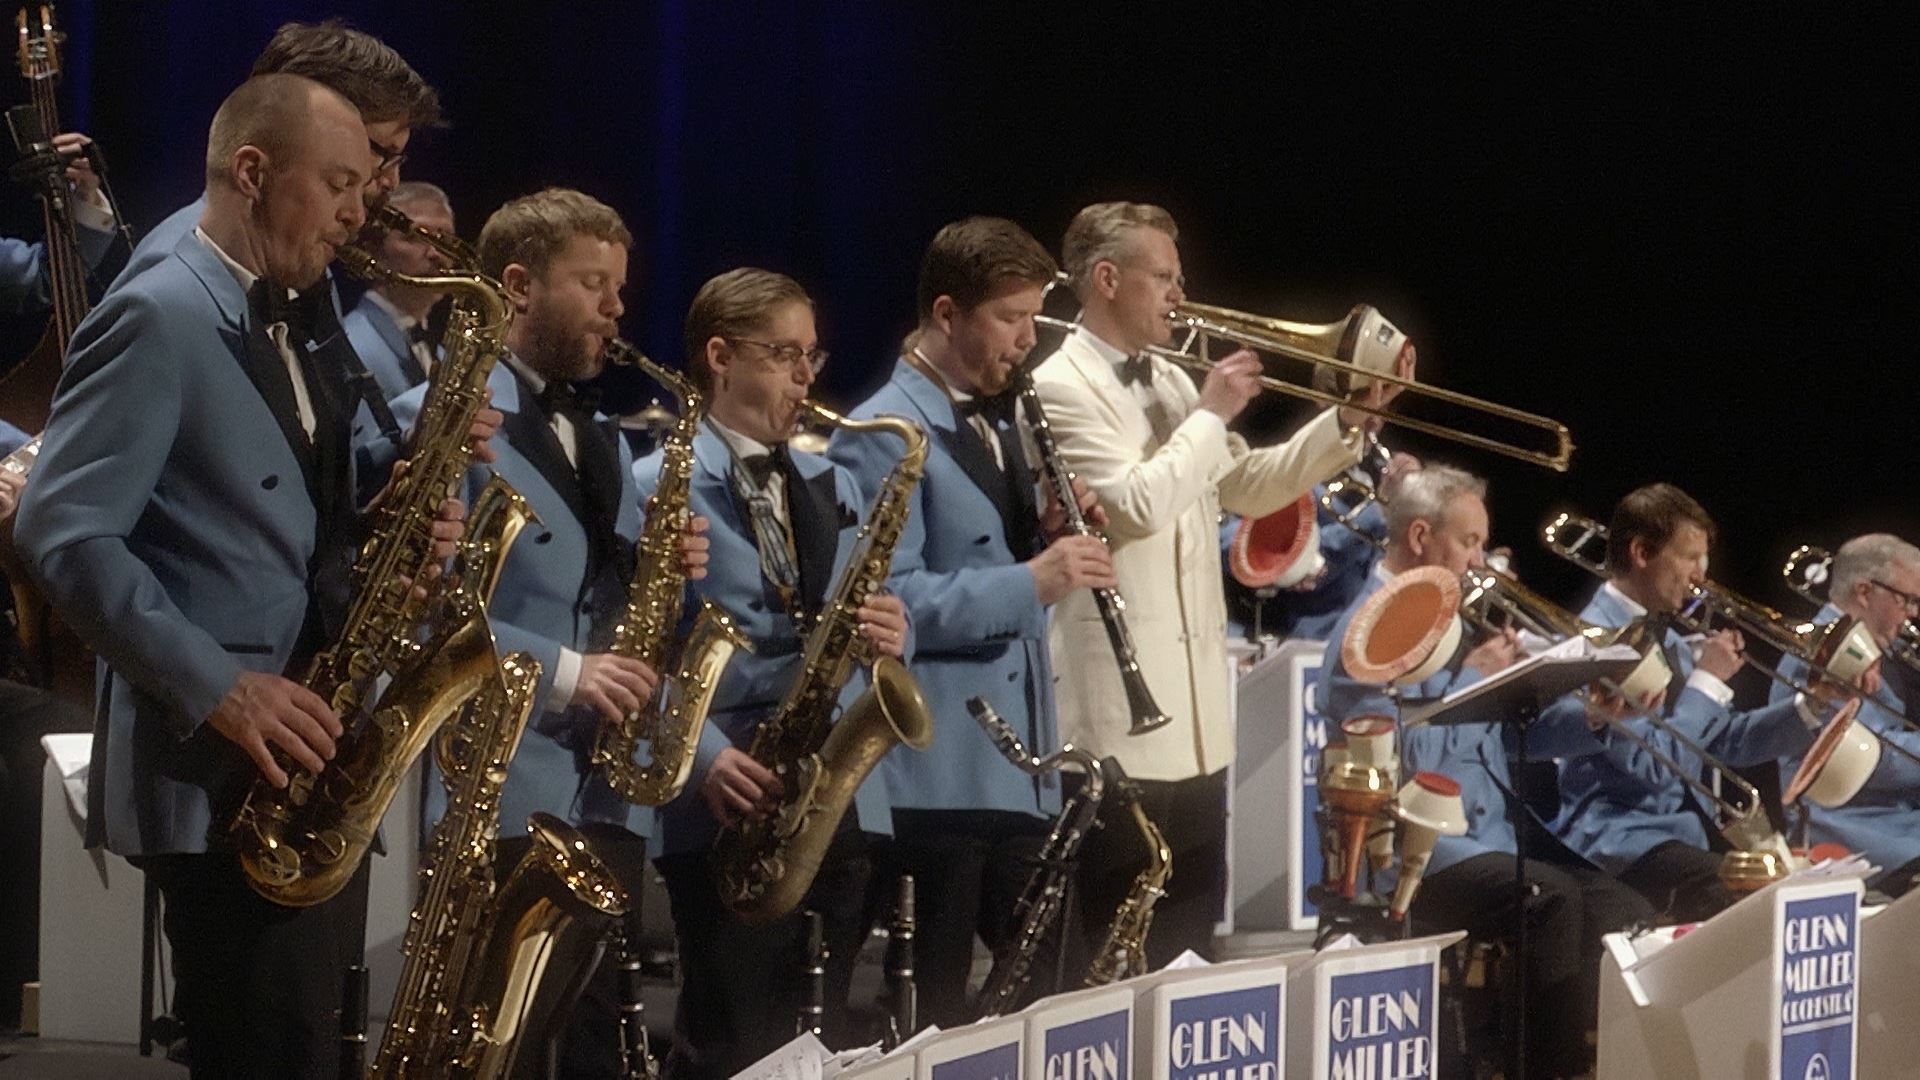 Glenn Miller orchestra - swing is the thing